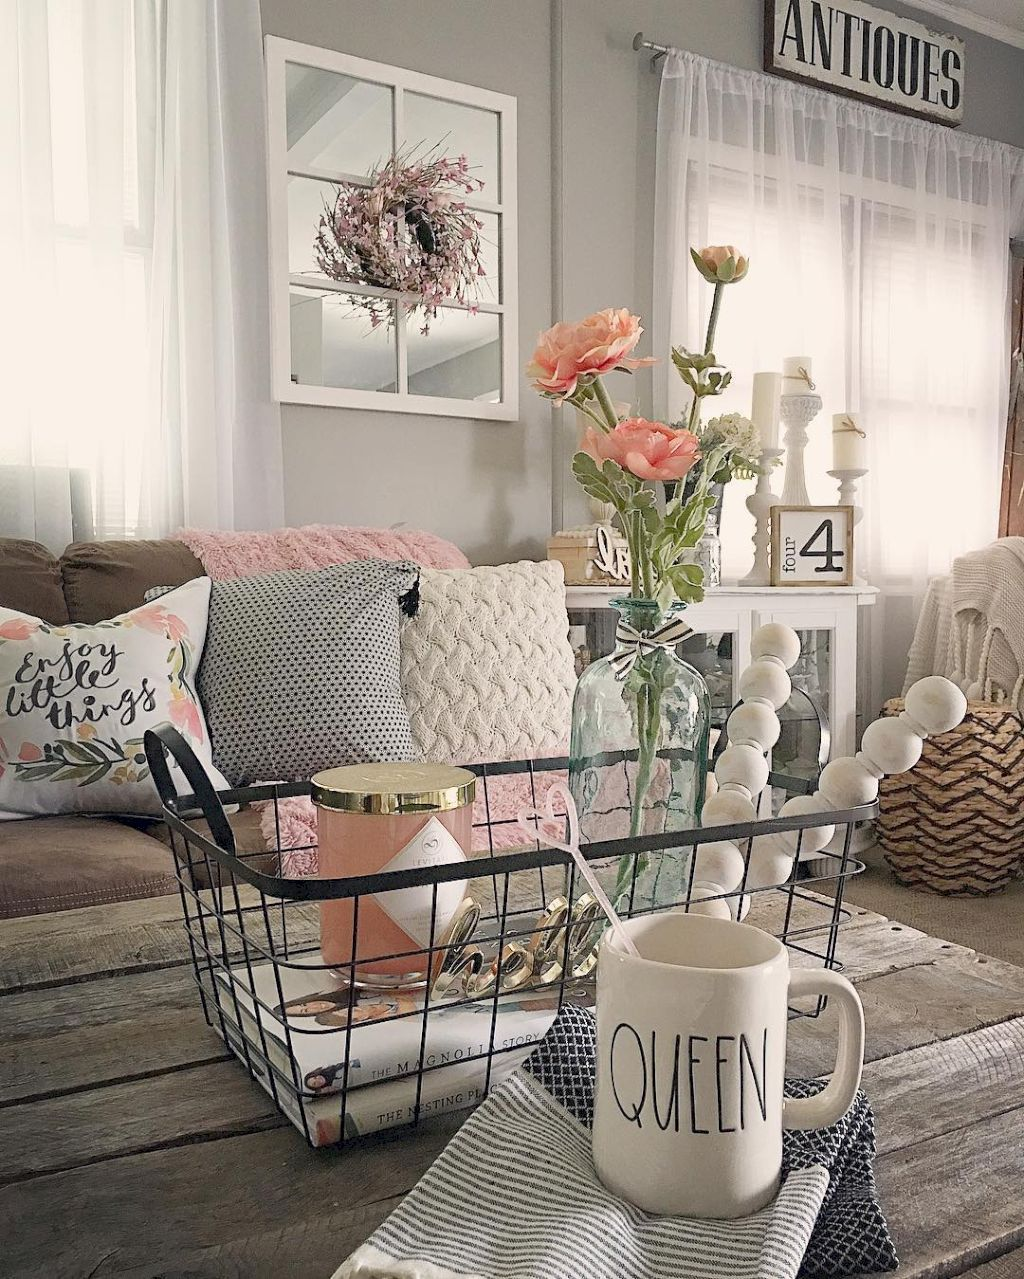 65 Cozy Farmhouse Living Room Makeover Decor Ideas May Leave A Comment  Farmhouse Style Is Hotter Than Itu0027s Ever Been. With A Nod To The Past, ...